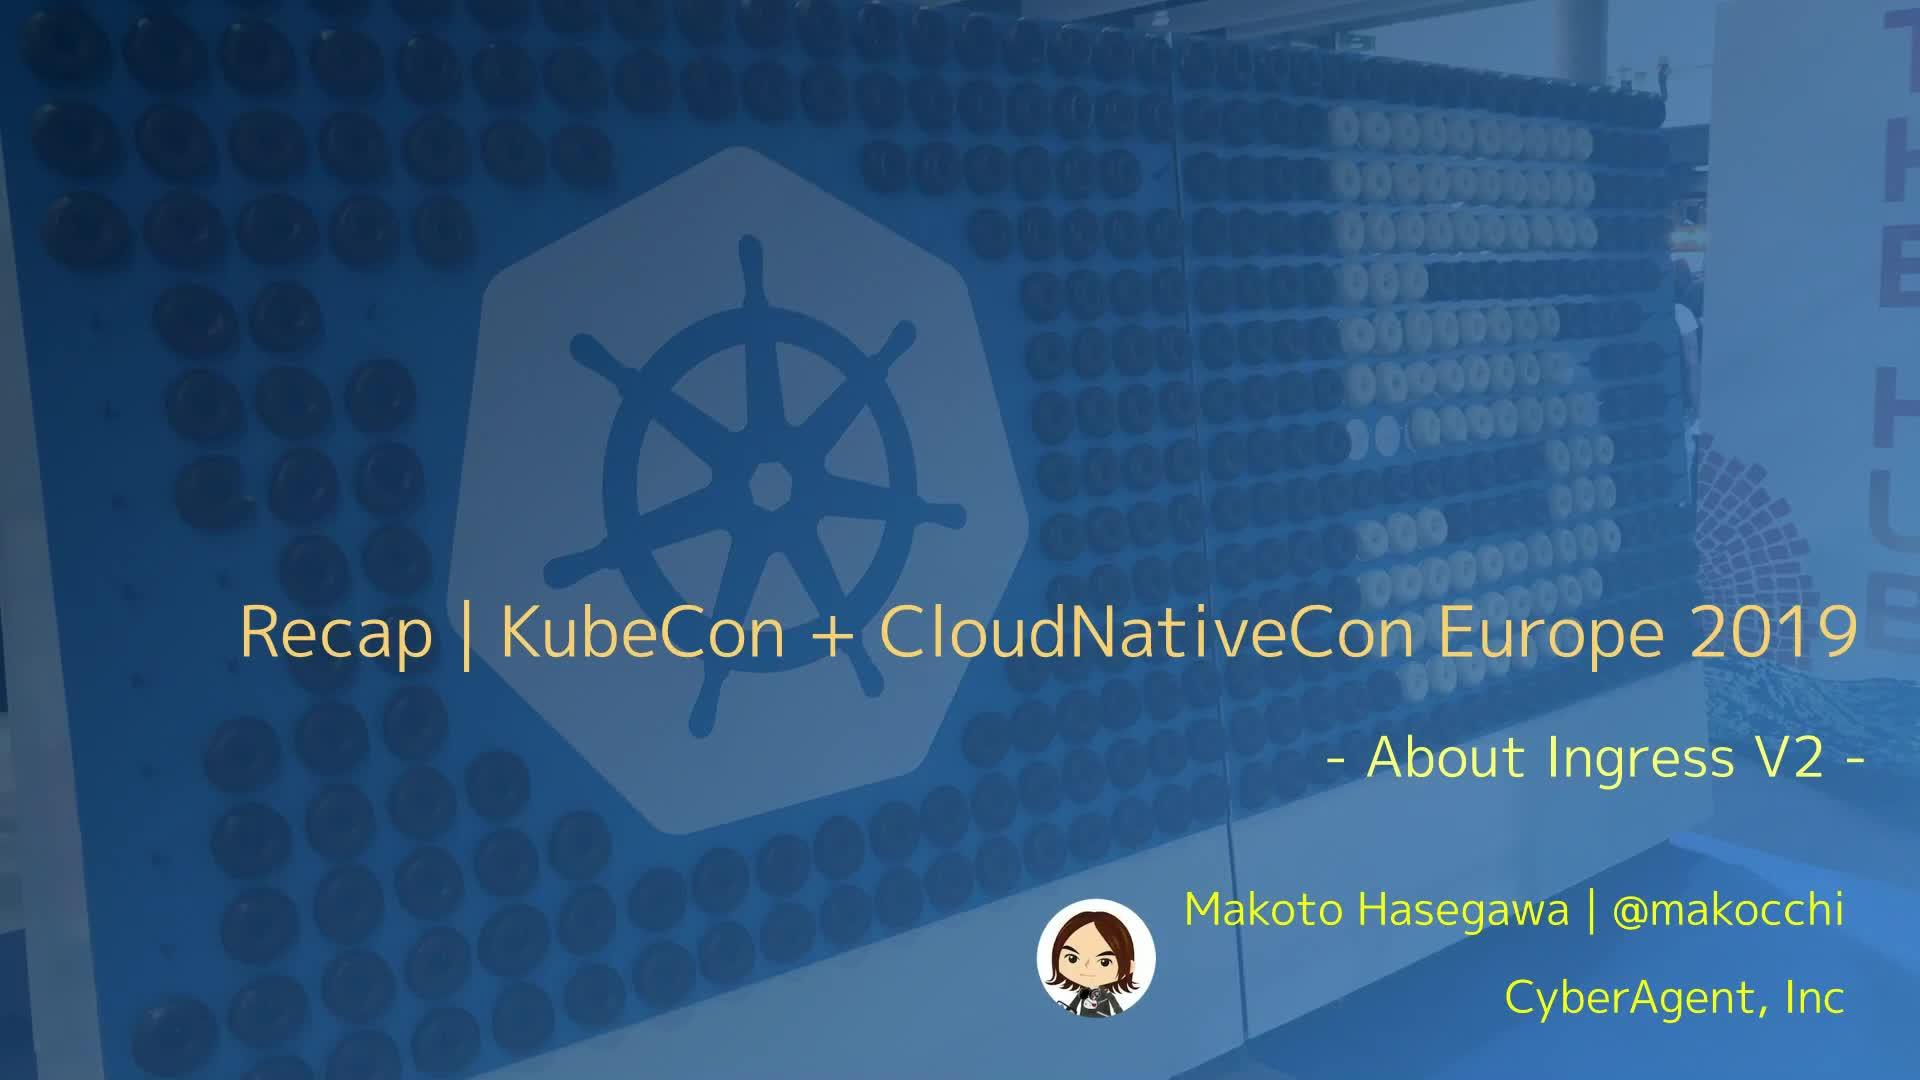 Recap | KubeCon + CloudNativeCon Euope 2019 -About Ingress V2-